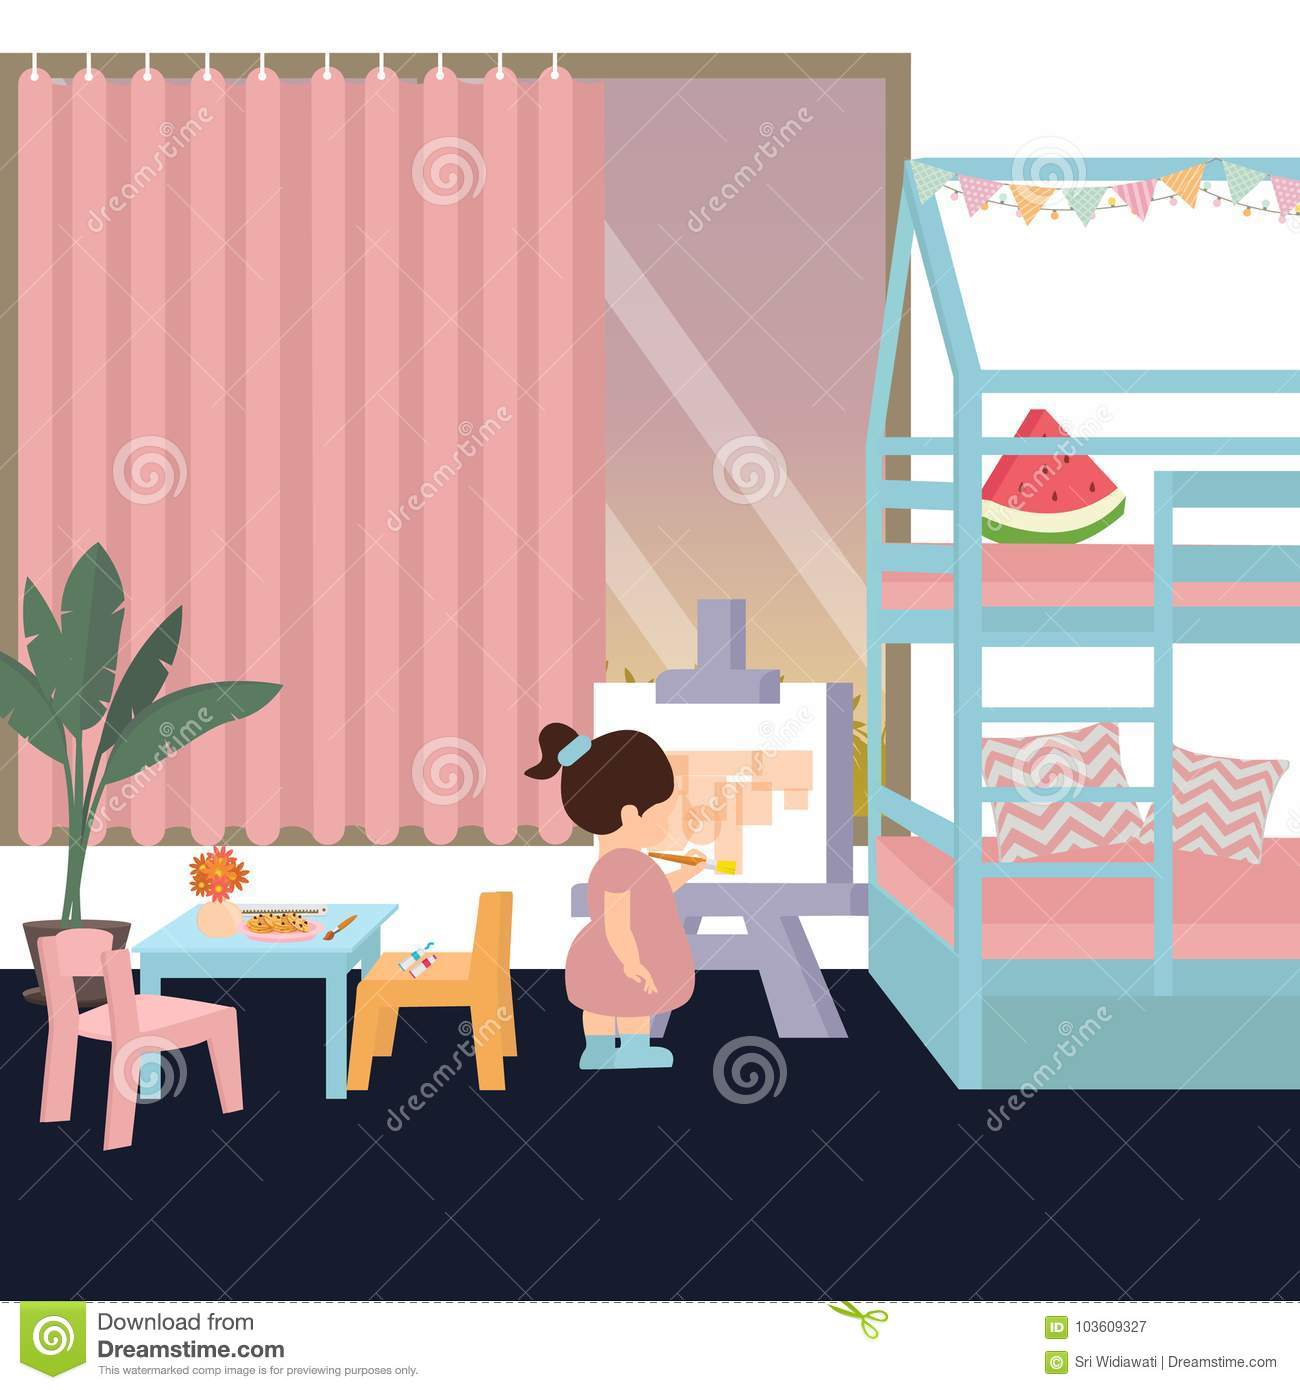 Cute kid in painting in his her bedroom play alone interior for daughter girl